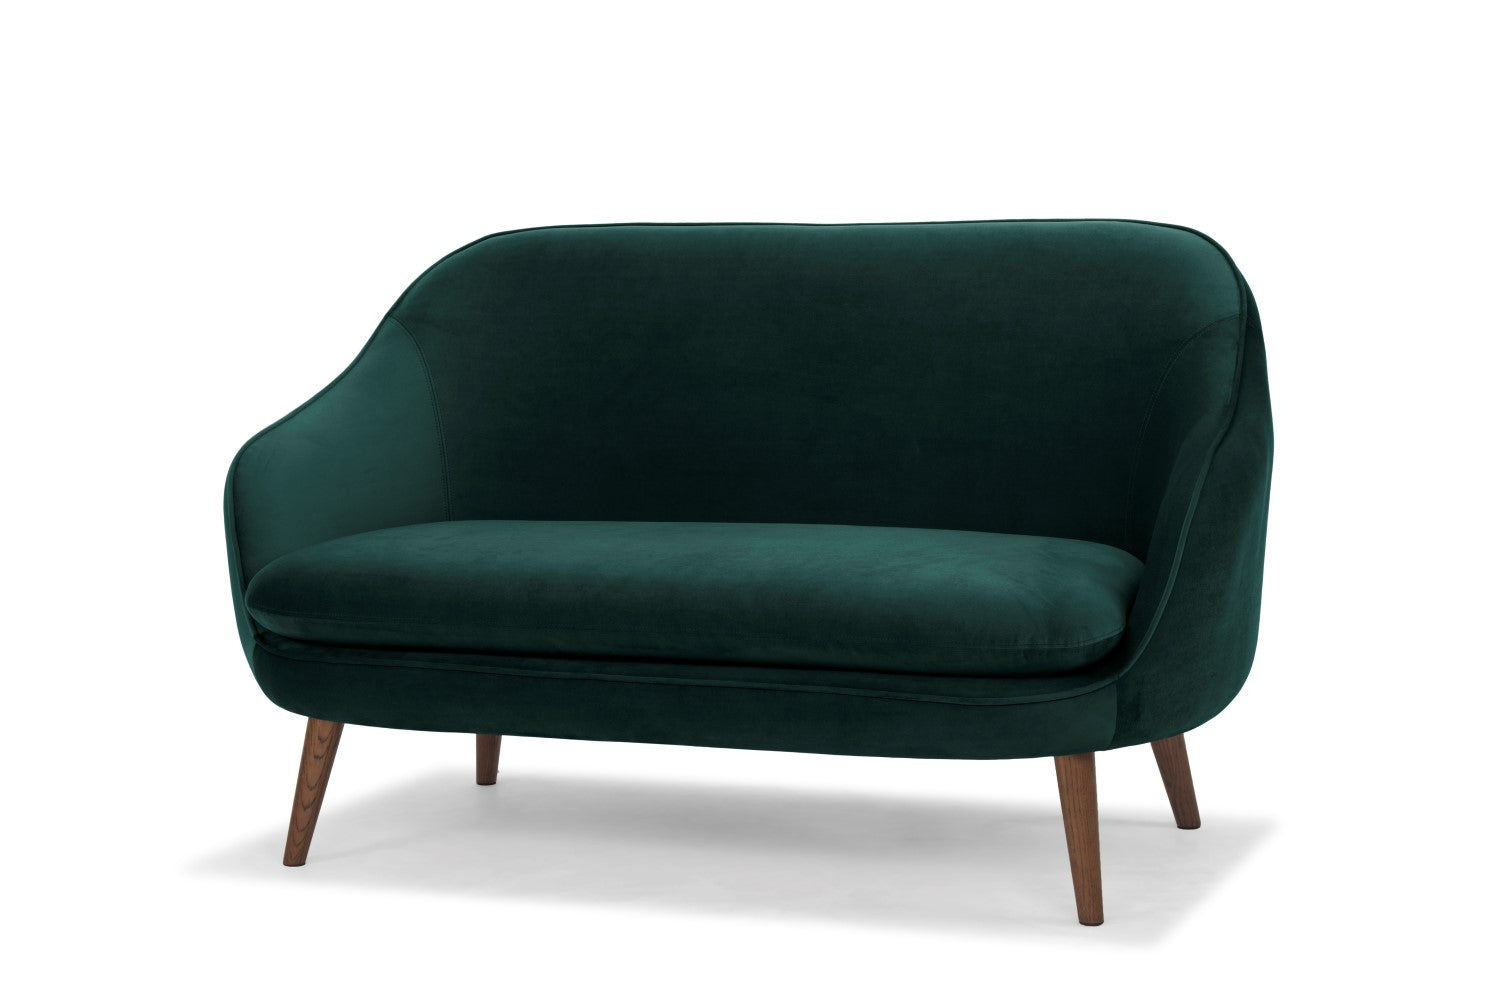 Furniture Maison | Yoko Loveseat, Timeless Classic with Soft Lines